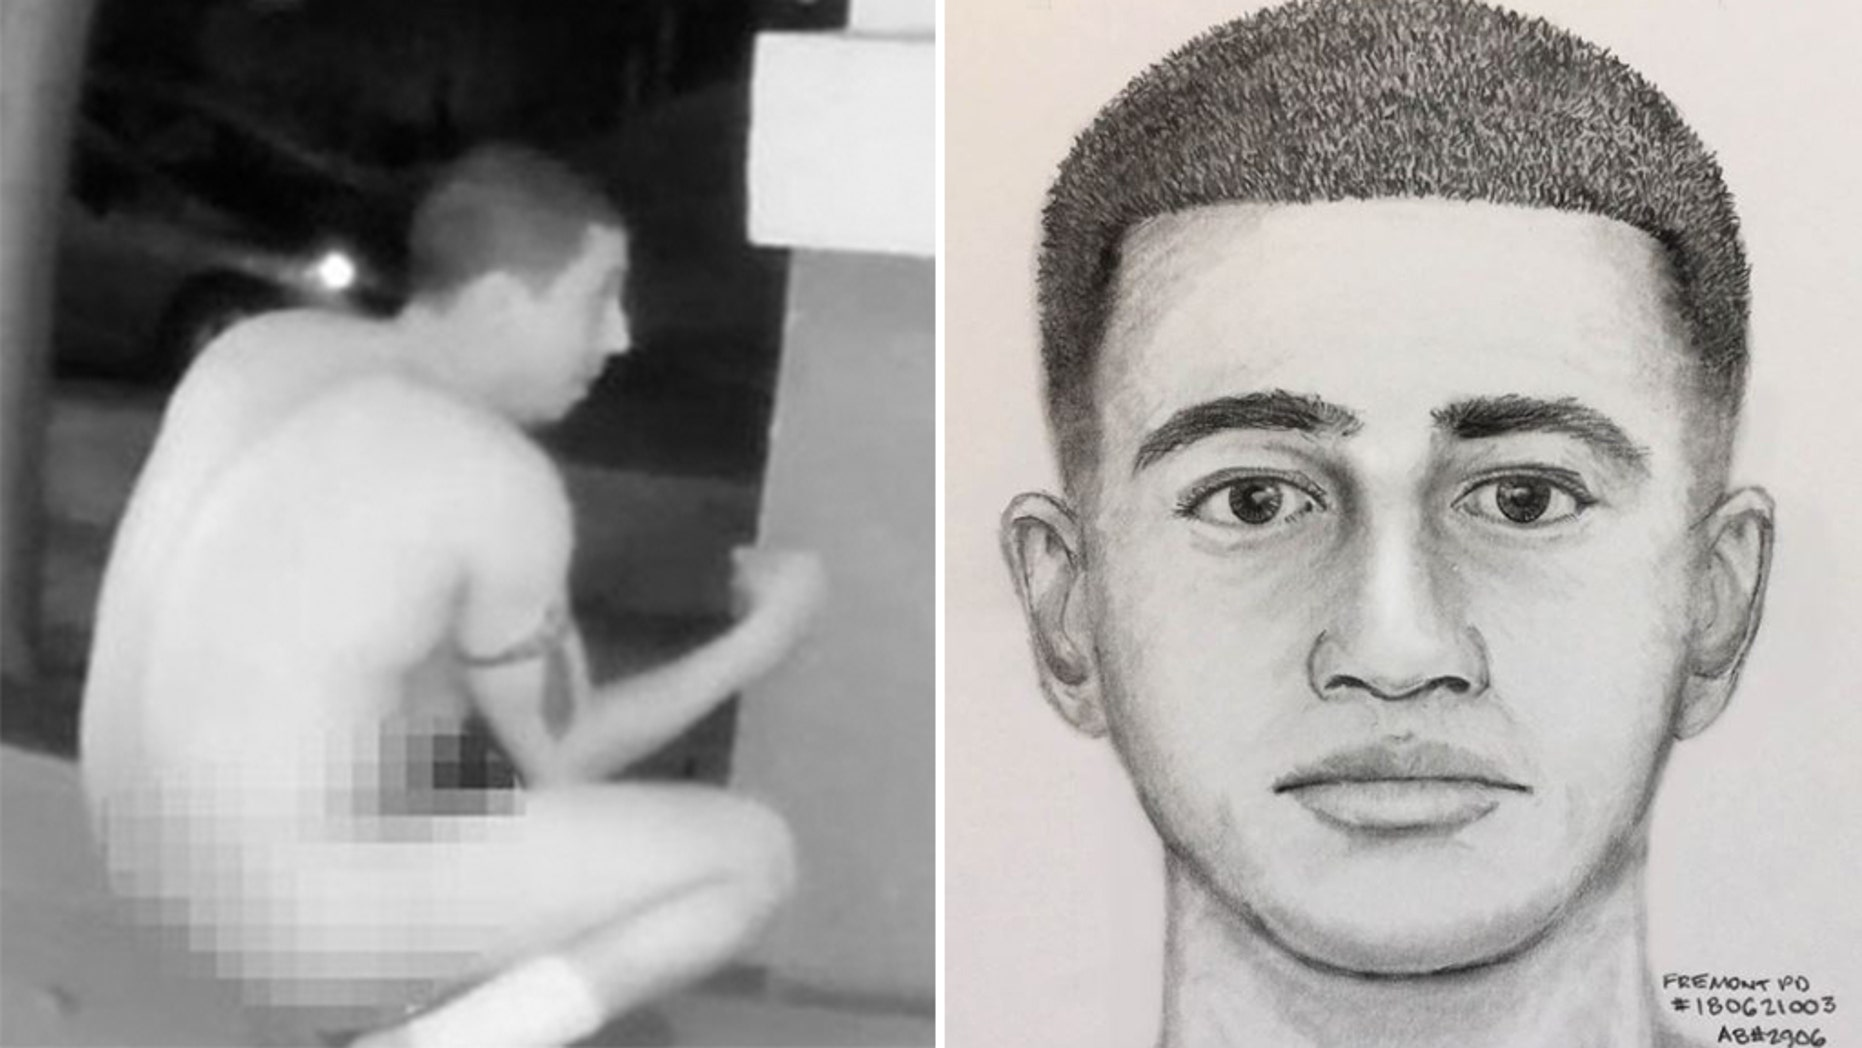 Authorities are seeking a suspect in California connected with multiple indecent exposure incidents. (Pleasanton and Fremont Police Department)